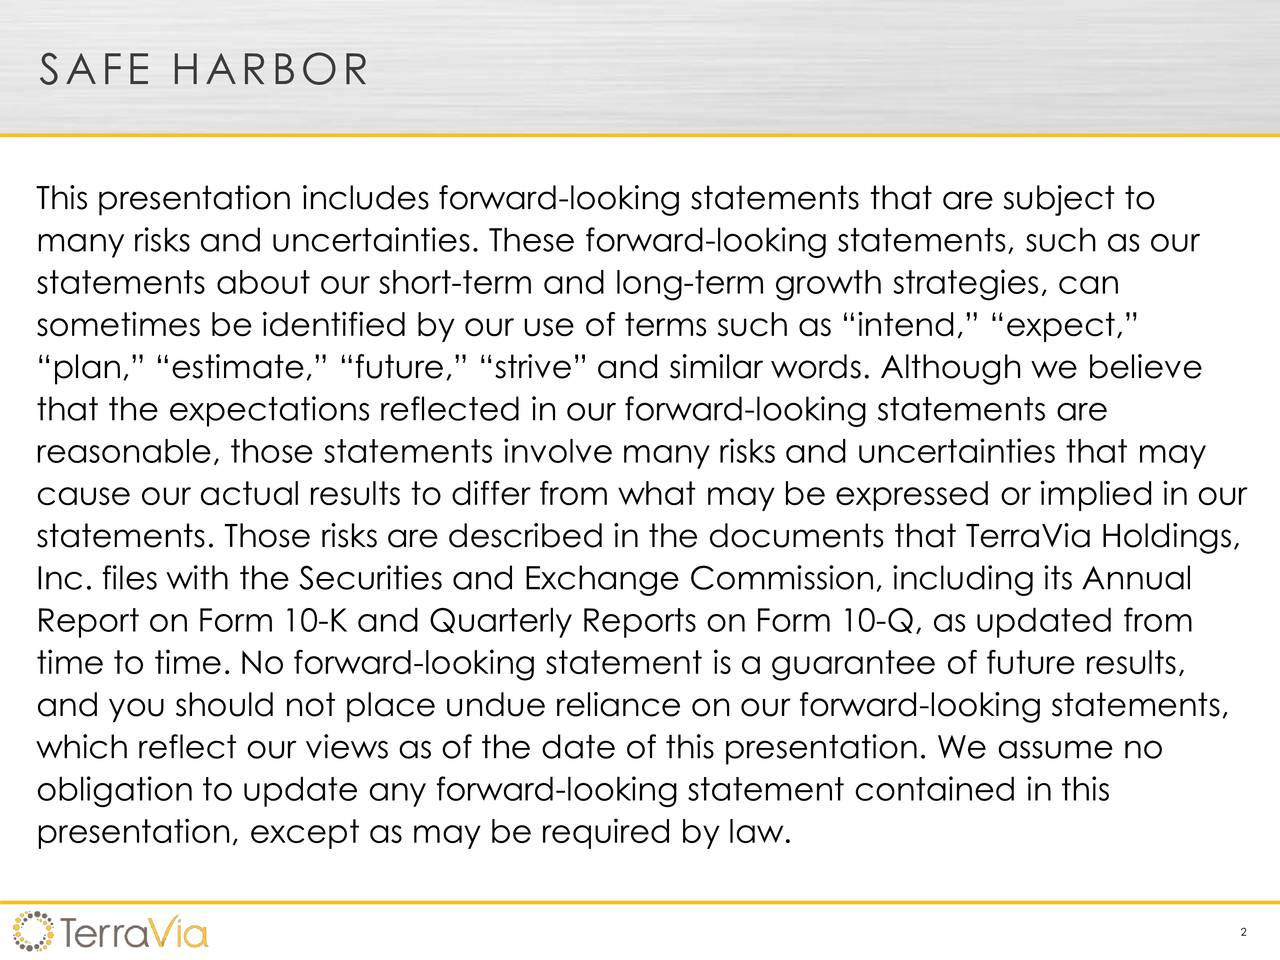 This presentation includes forward-looking statements that are subject to many risks and uncertainties. These forward-looking statements, such as our statements about our short-term and long-term growth strategies, can sometimes be identified by our use of terms such as intend, expect, plan, estimate, future, strive and similar words. Although we believe that the expectations reflected in our forward-looking statements are reasonable, those statements involve many risks and uncertainties that may cause our actual results to differ from what may be expressed or implied in our statements. Those risks are described in the documents that TerraVia Holdings, Inc. files with the Securities and Exchange Commission, including its Annual Report on Form 10-K and Quarterly Reports on Form 10-Q, as updated from time to time. No forward-looking statement is a guarantee of future results, and you should not place undue reliance on our forward-looking statements, which reflect our views as of the date of this presentation. We assume no obligation to update any forward-looking statement contained in this presentation, except as may be required by law. 2